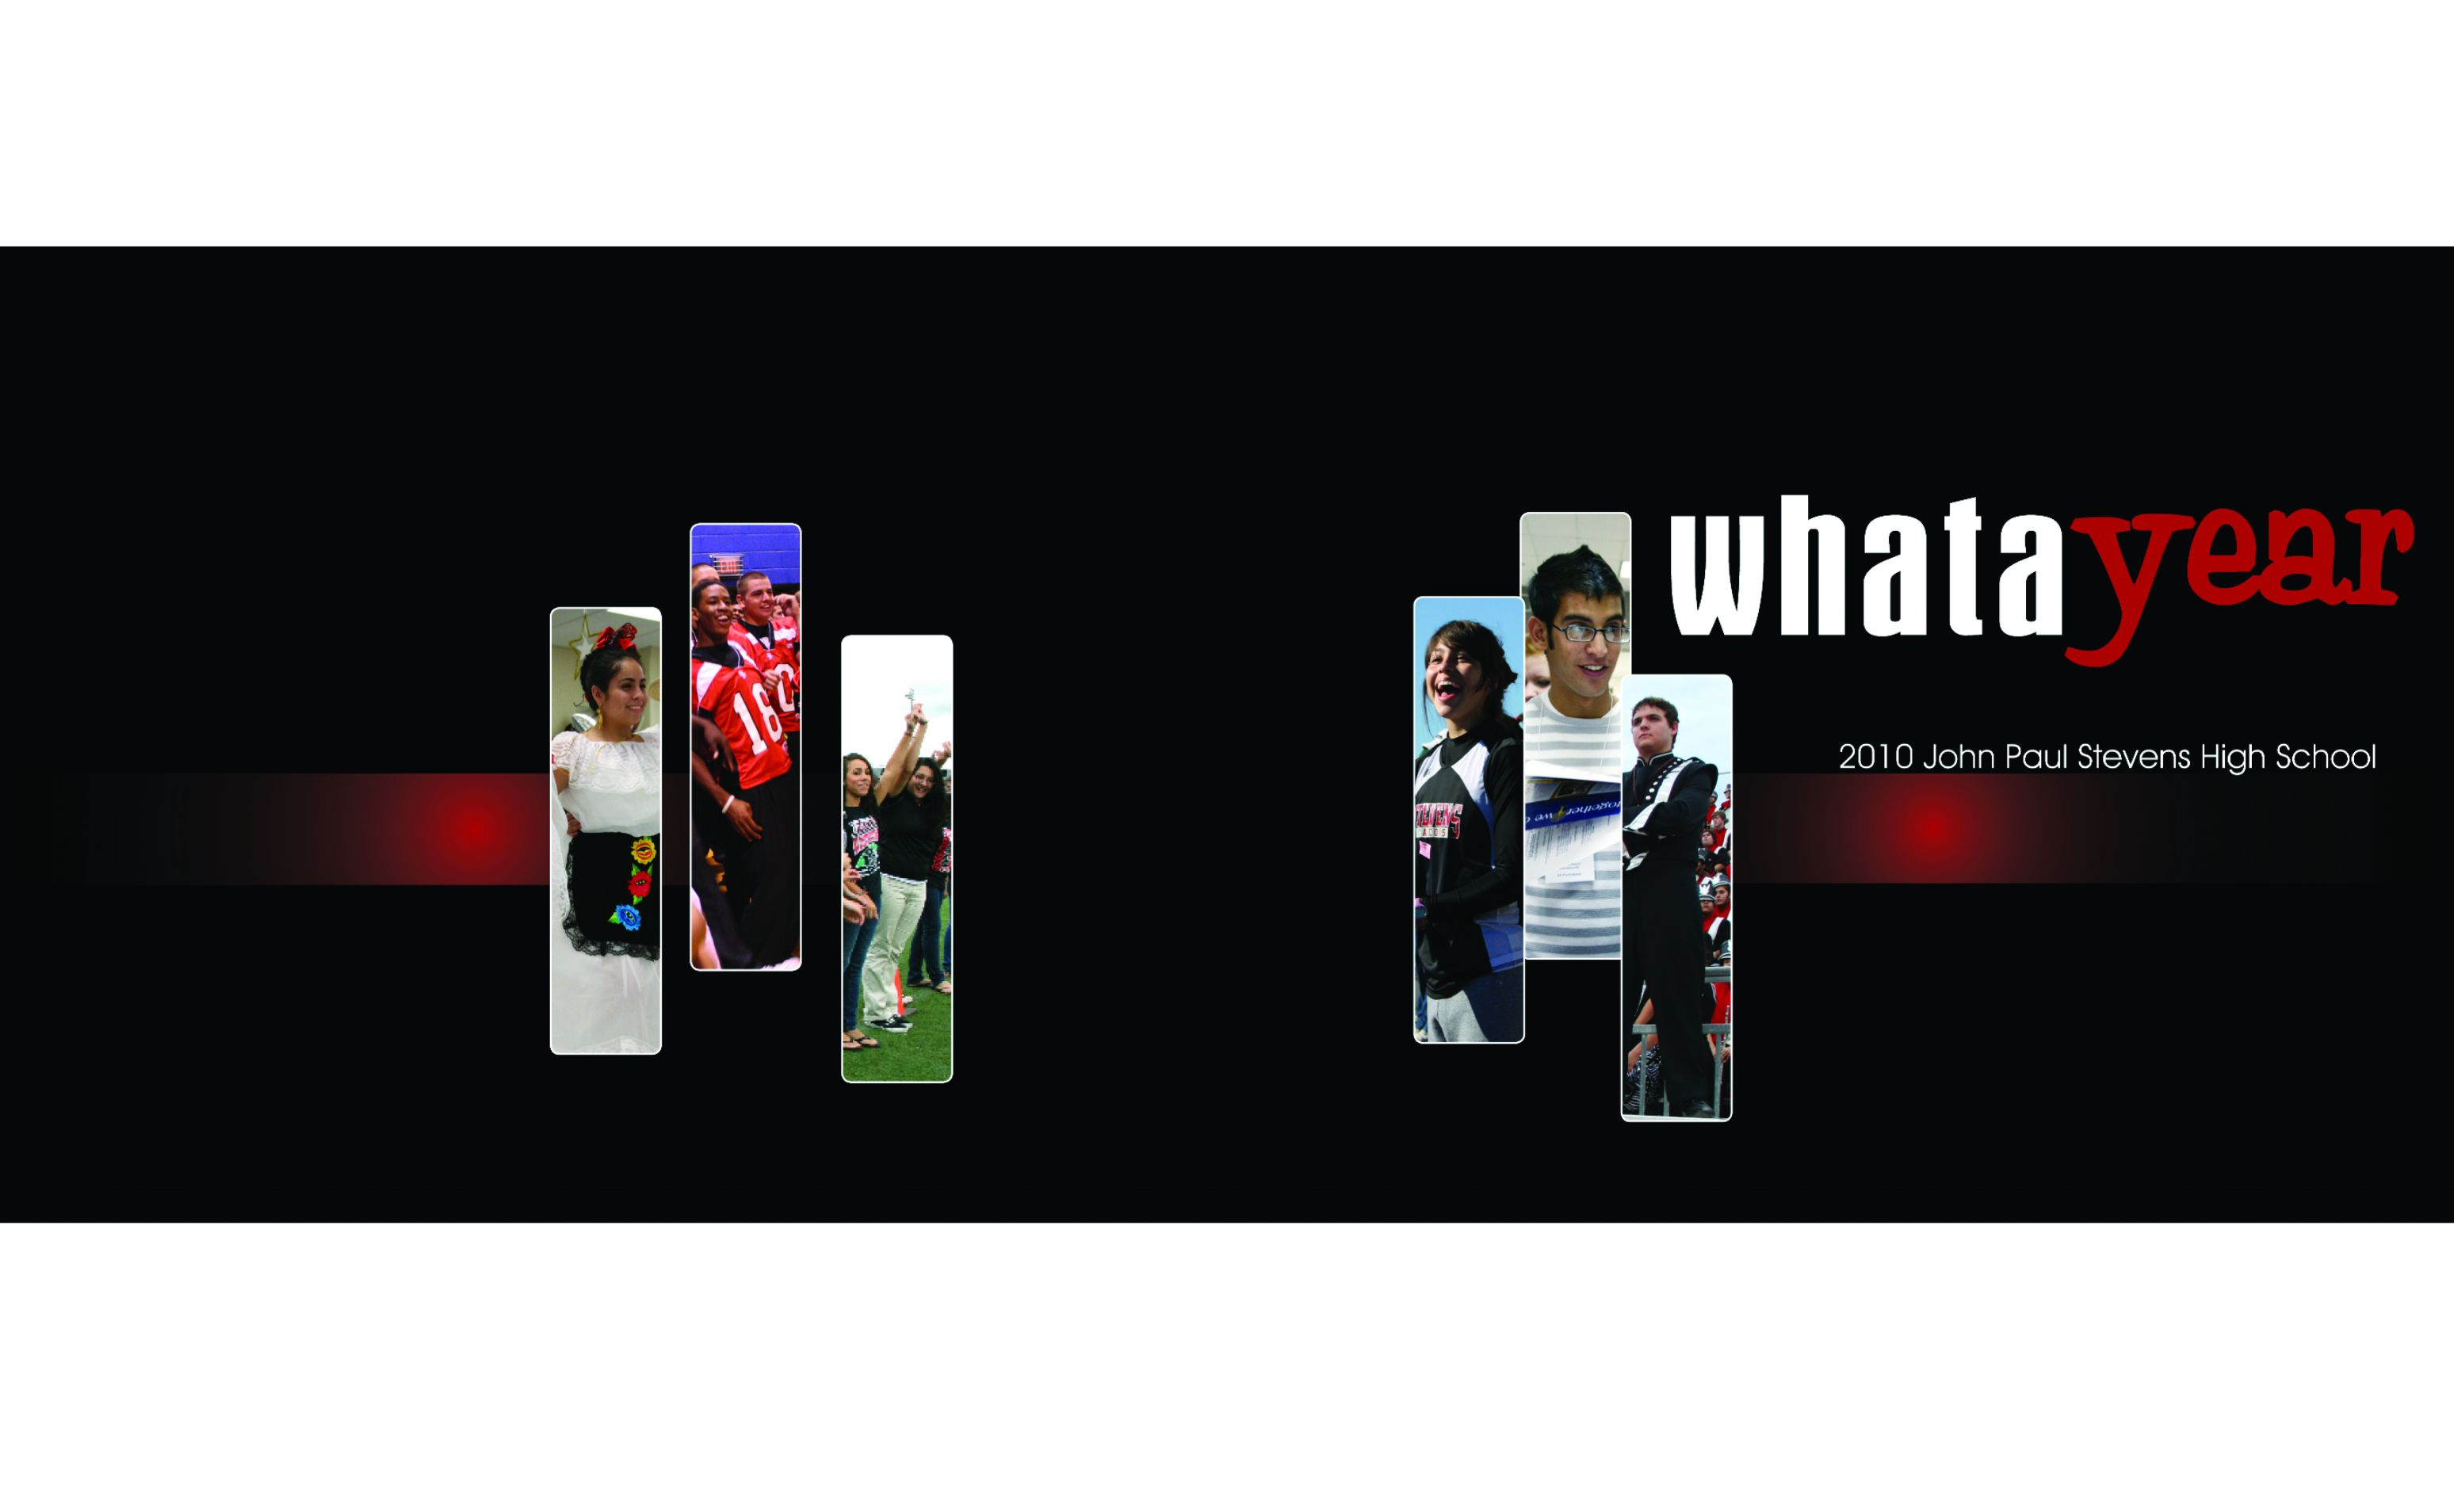 moving your yearbook theme concepts beyond the cover